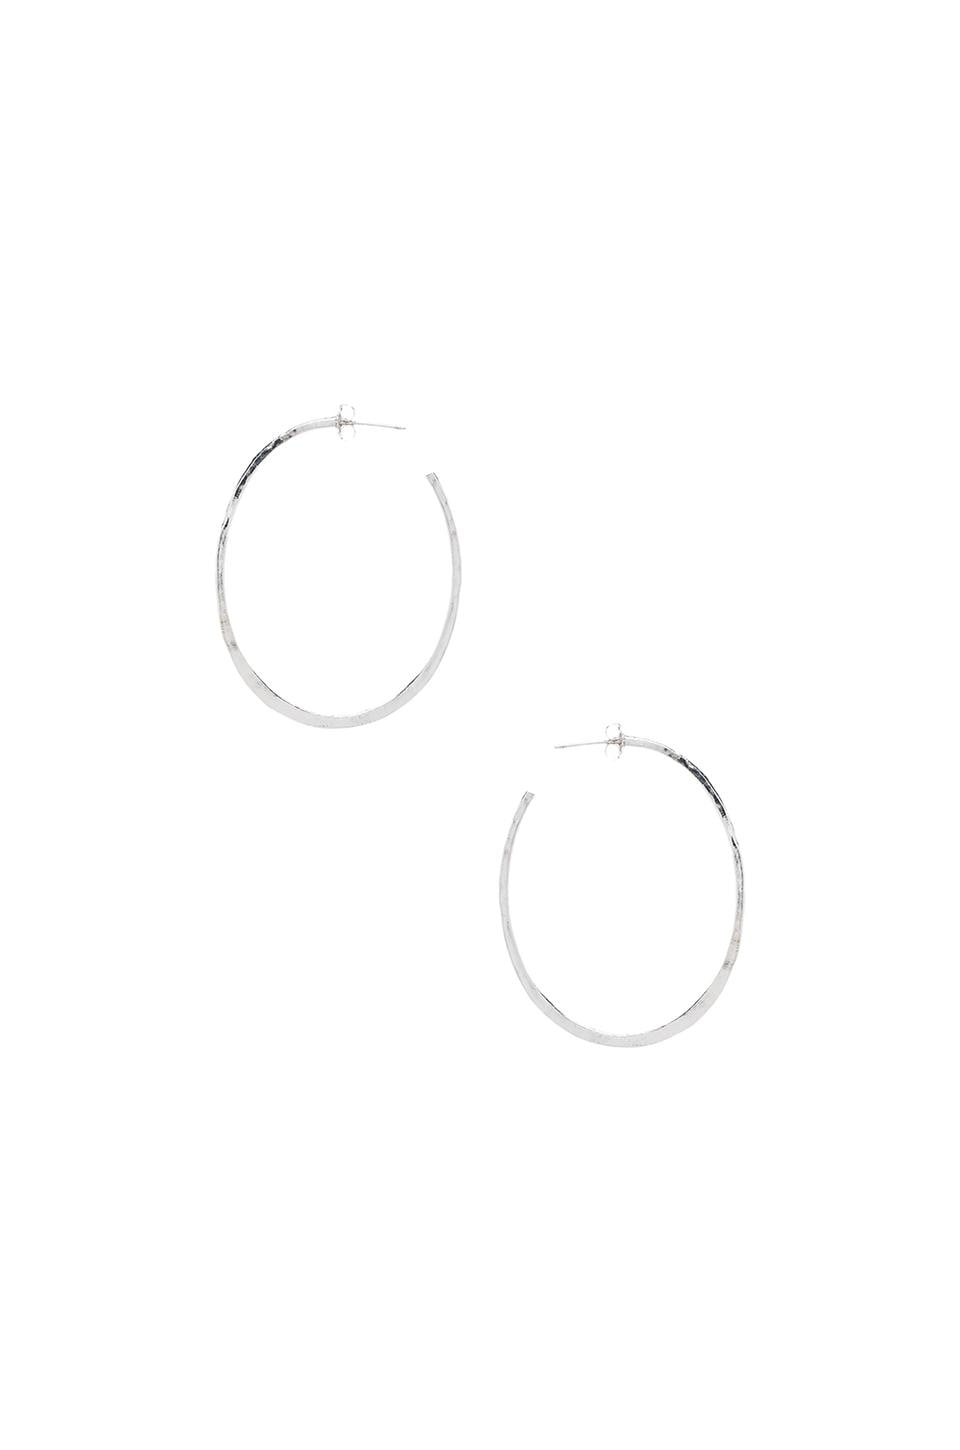 Natalie B Jewelry Huggy Hoop Earrings in Silver